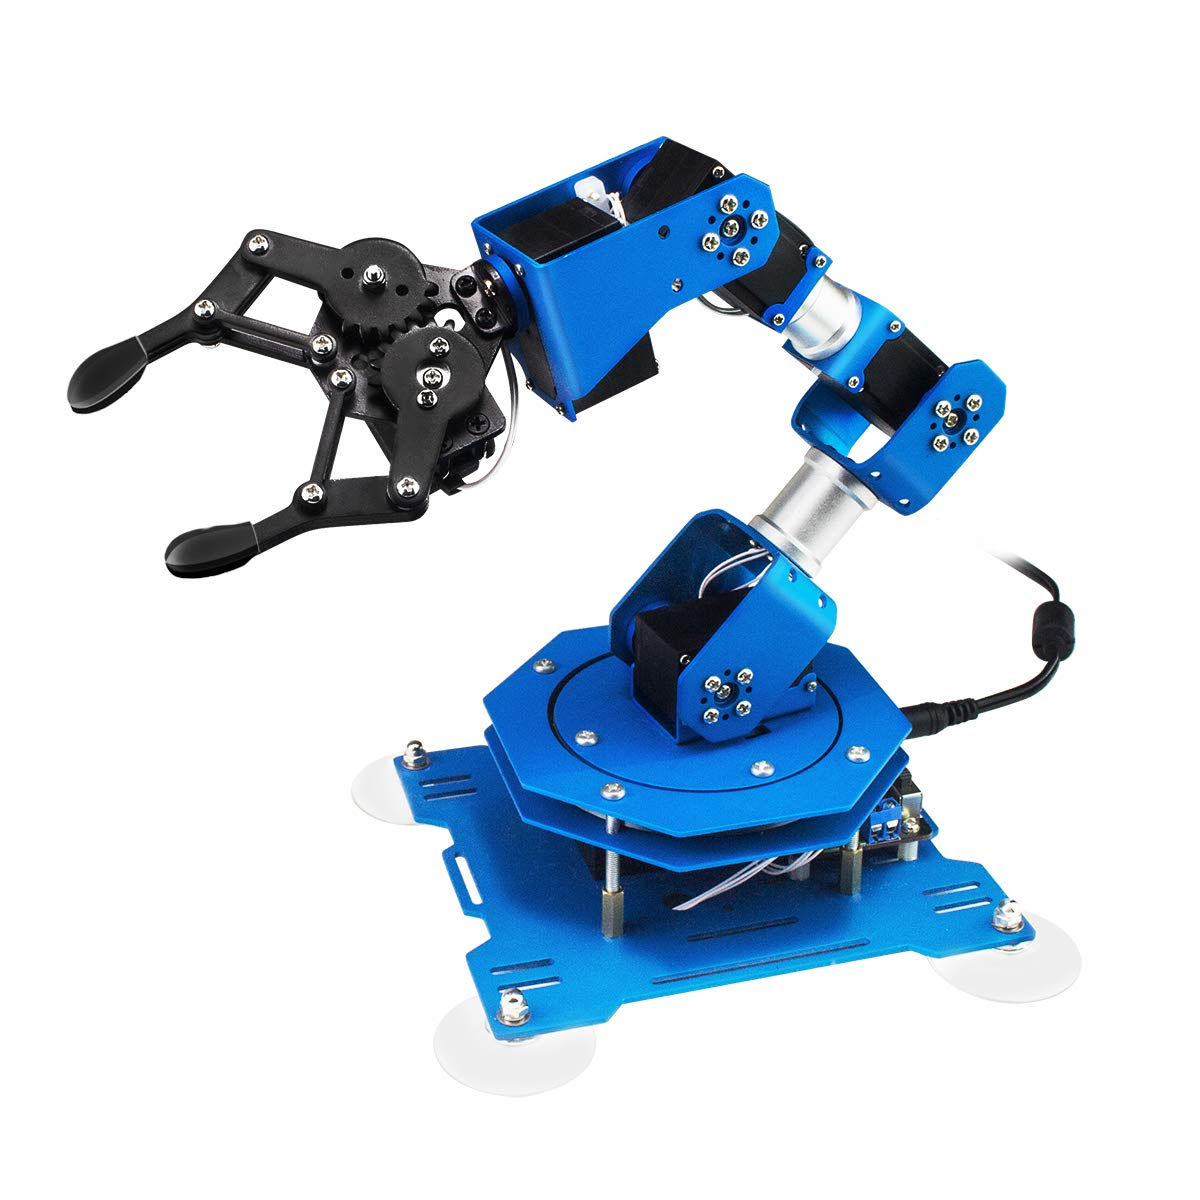 LewanSoul Robotic Arm 6DOF Scratch Arduino Programming STEAM Robot with Feedback of Servo Parameter, Wireless/Wired Mouse/Mobile Phone Controland Tutorial by LewanSoul